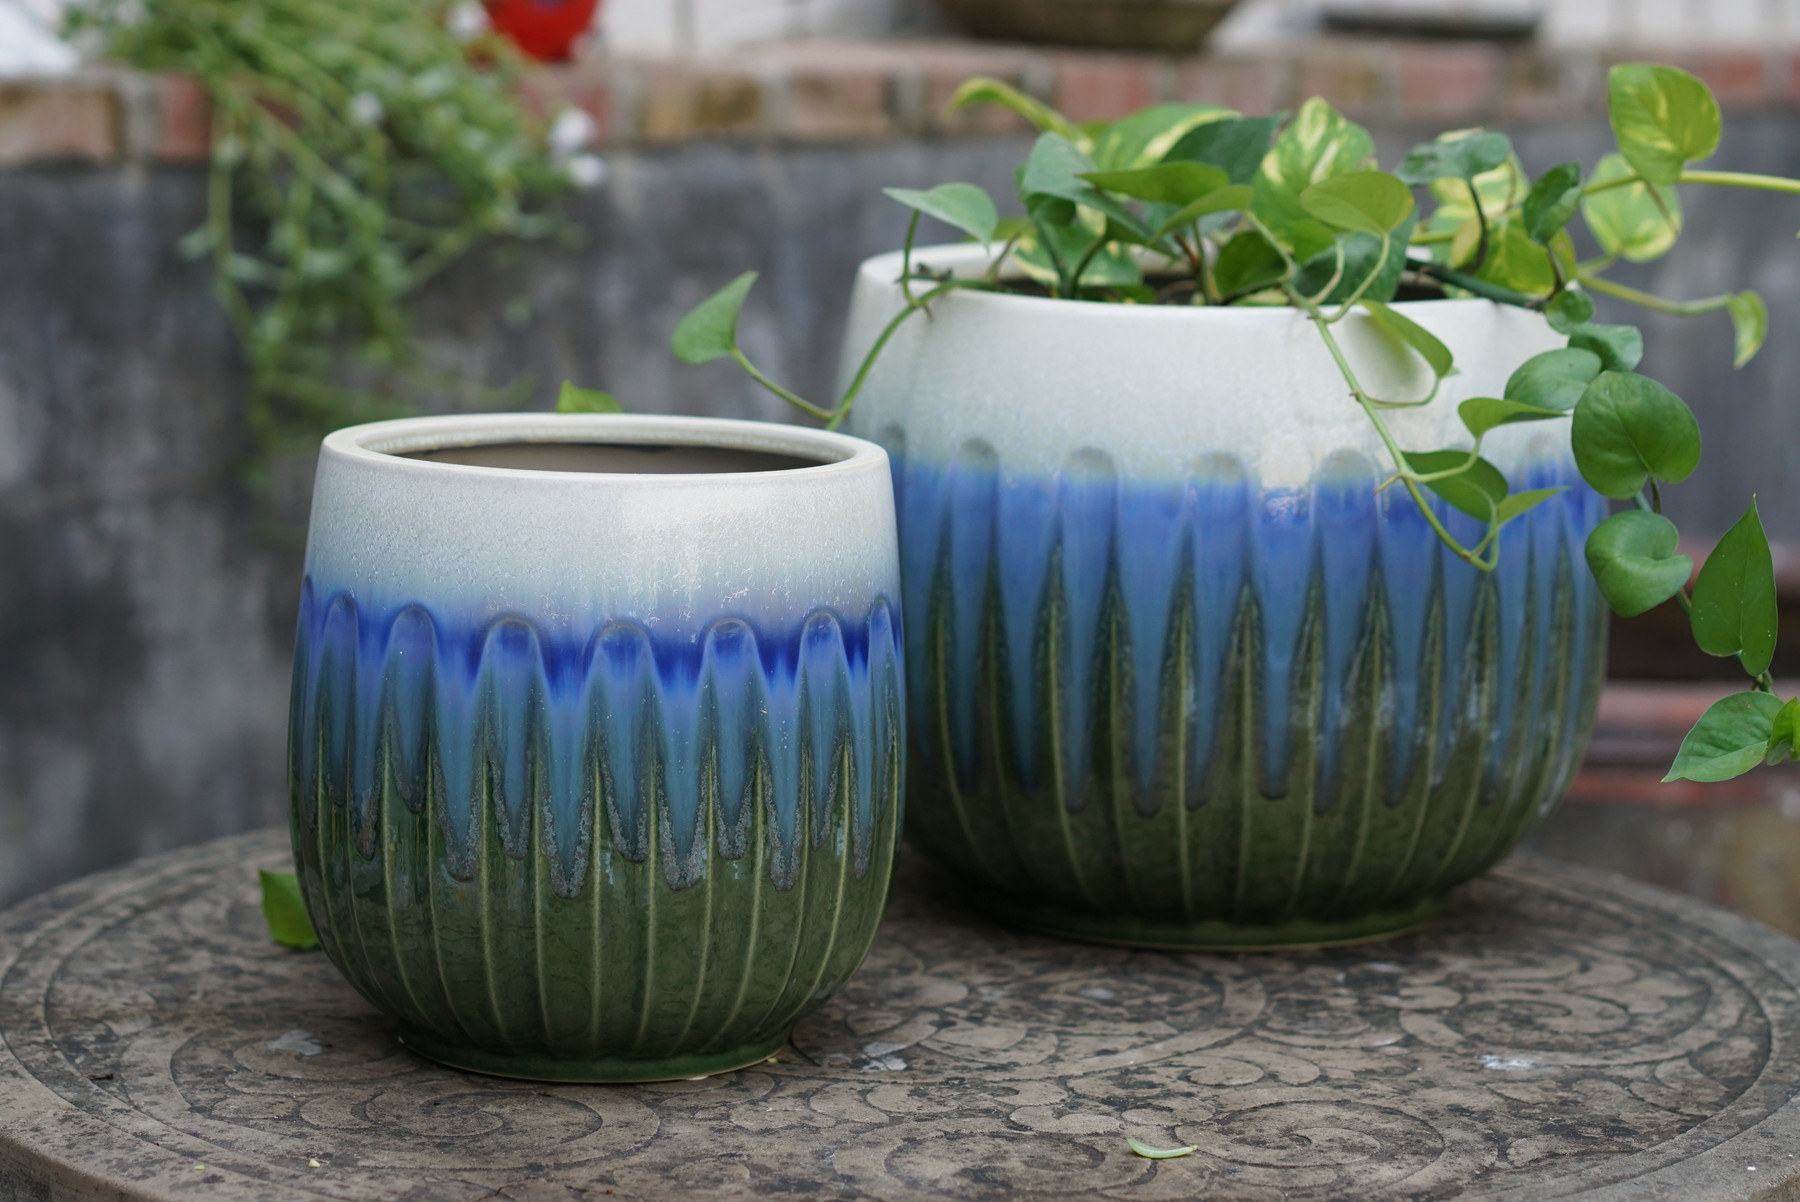 A blue, green, and white-colored ceramic planter